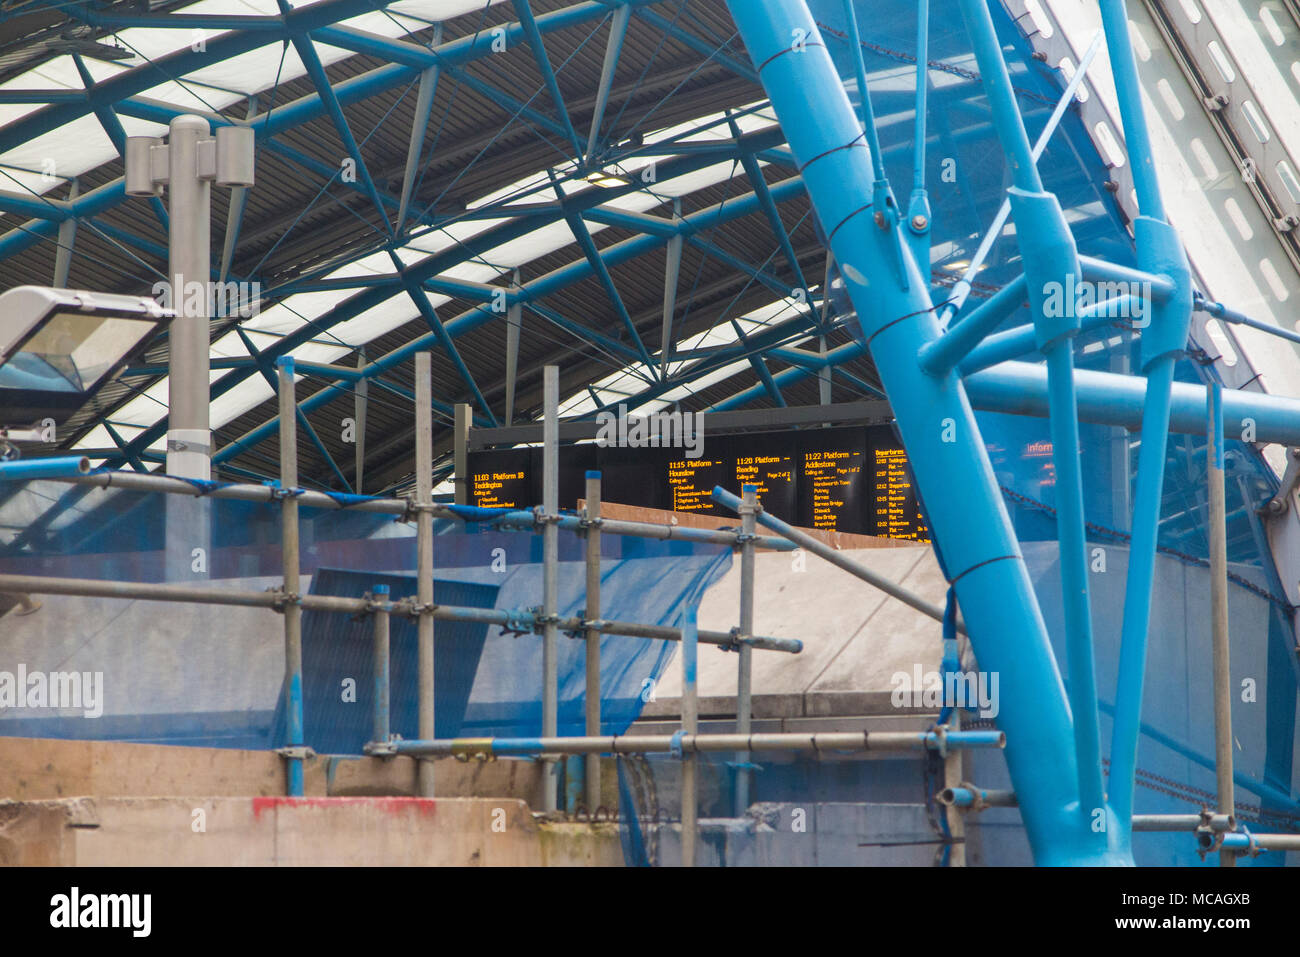 Work continues on the Waterloo International station conversion, with scaffolding and work but platforms and train displays fully operational - Stock Image